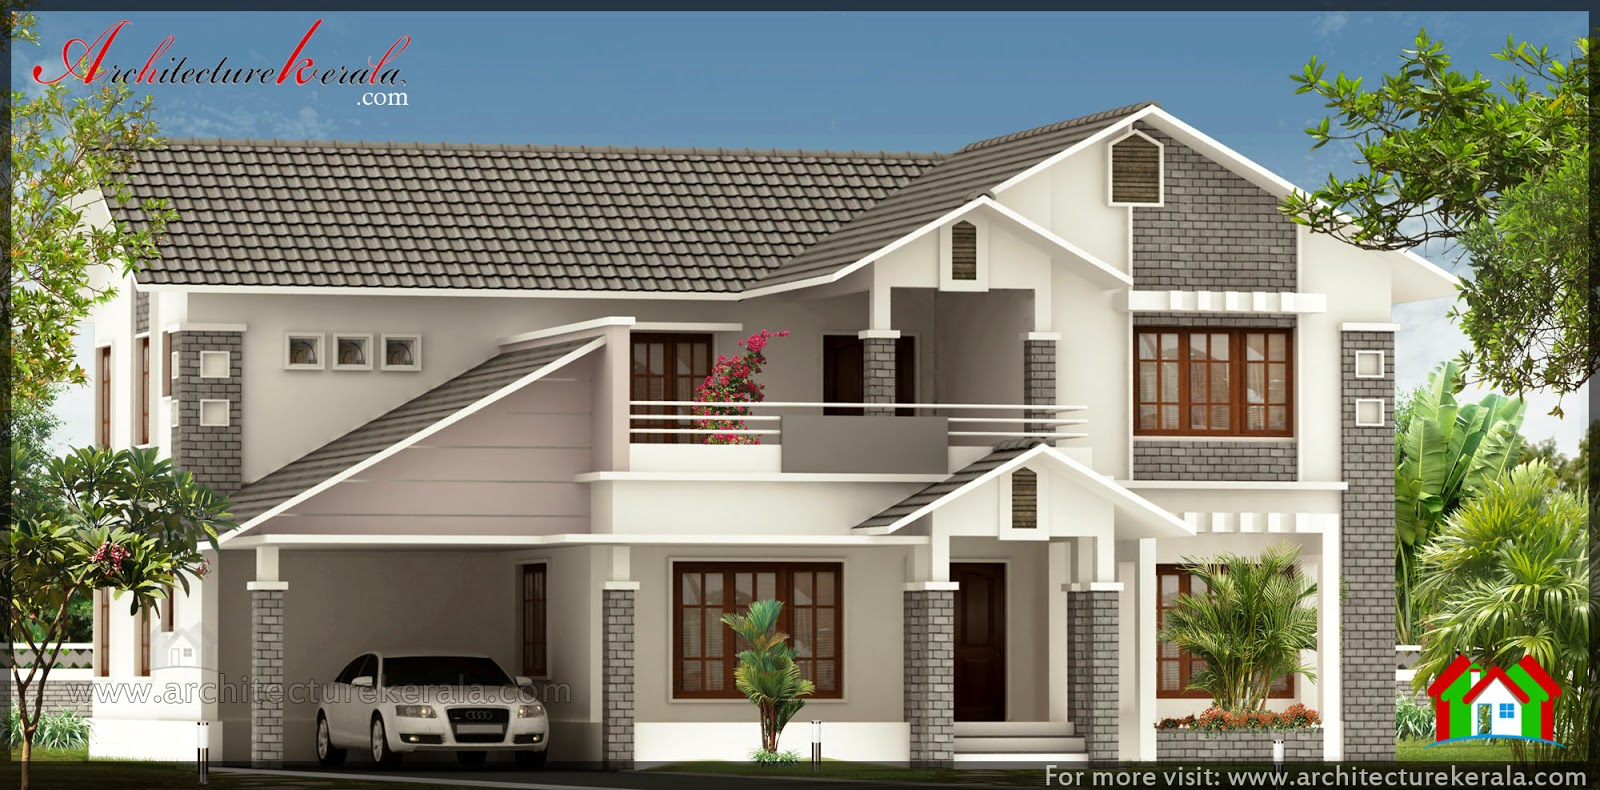 Full slope roof house design architecture kerala for Slope home design